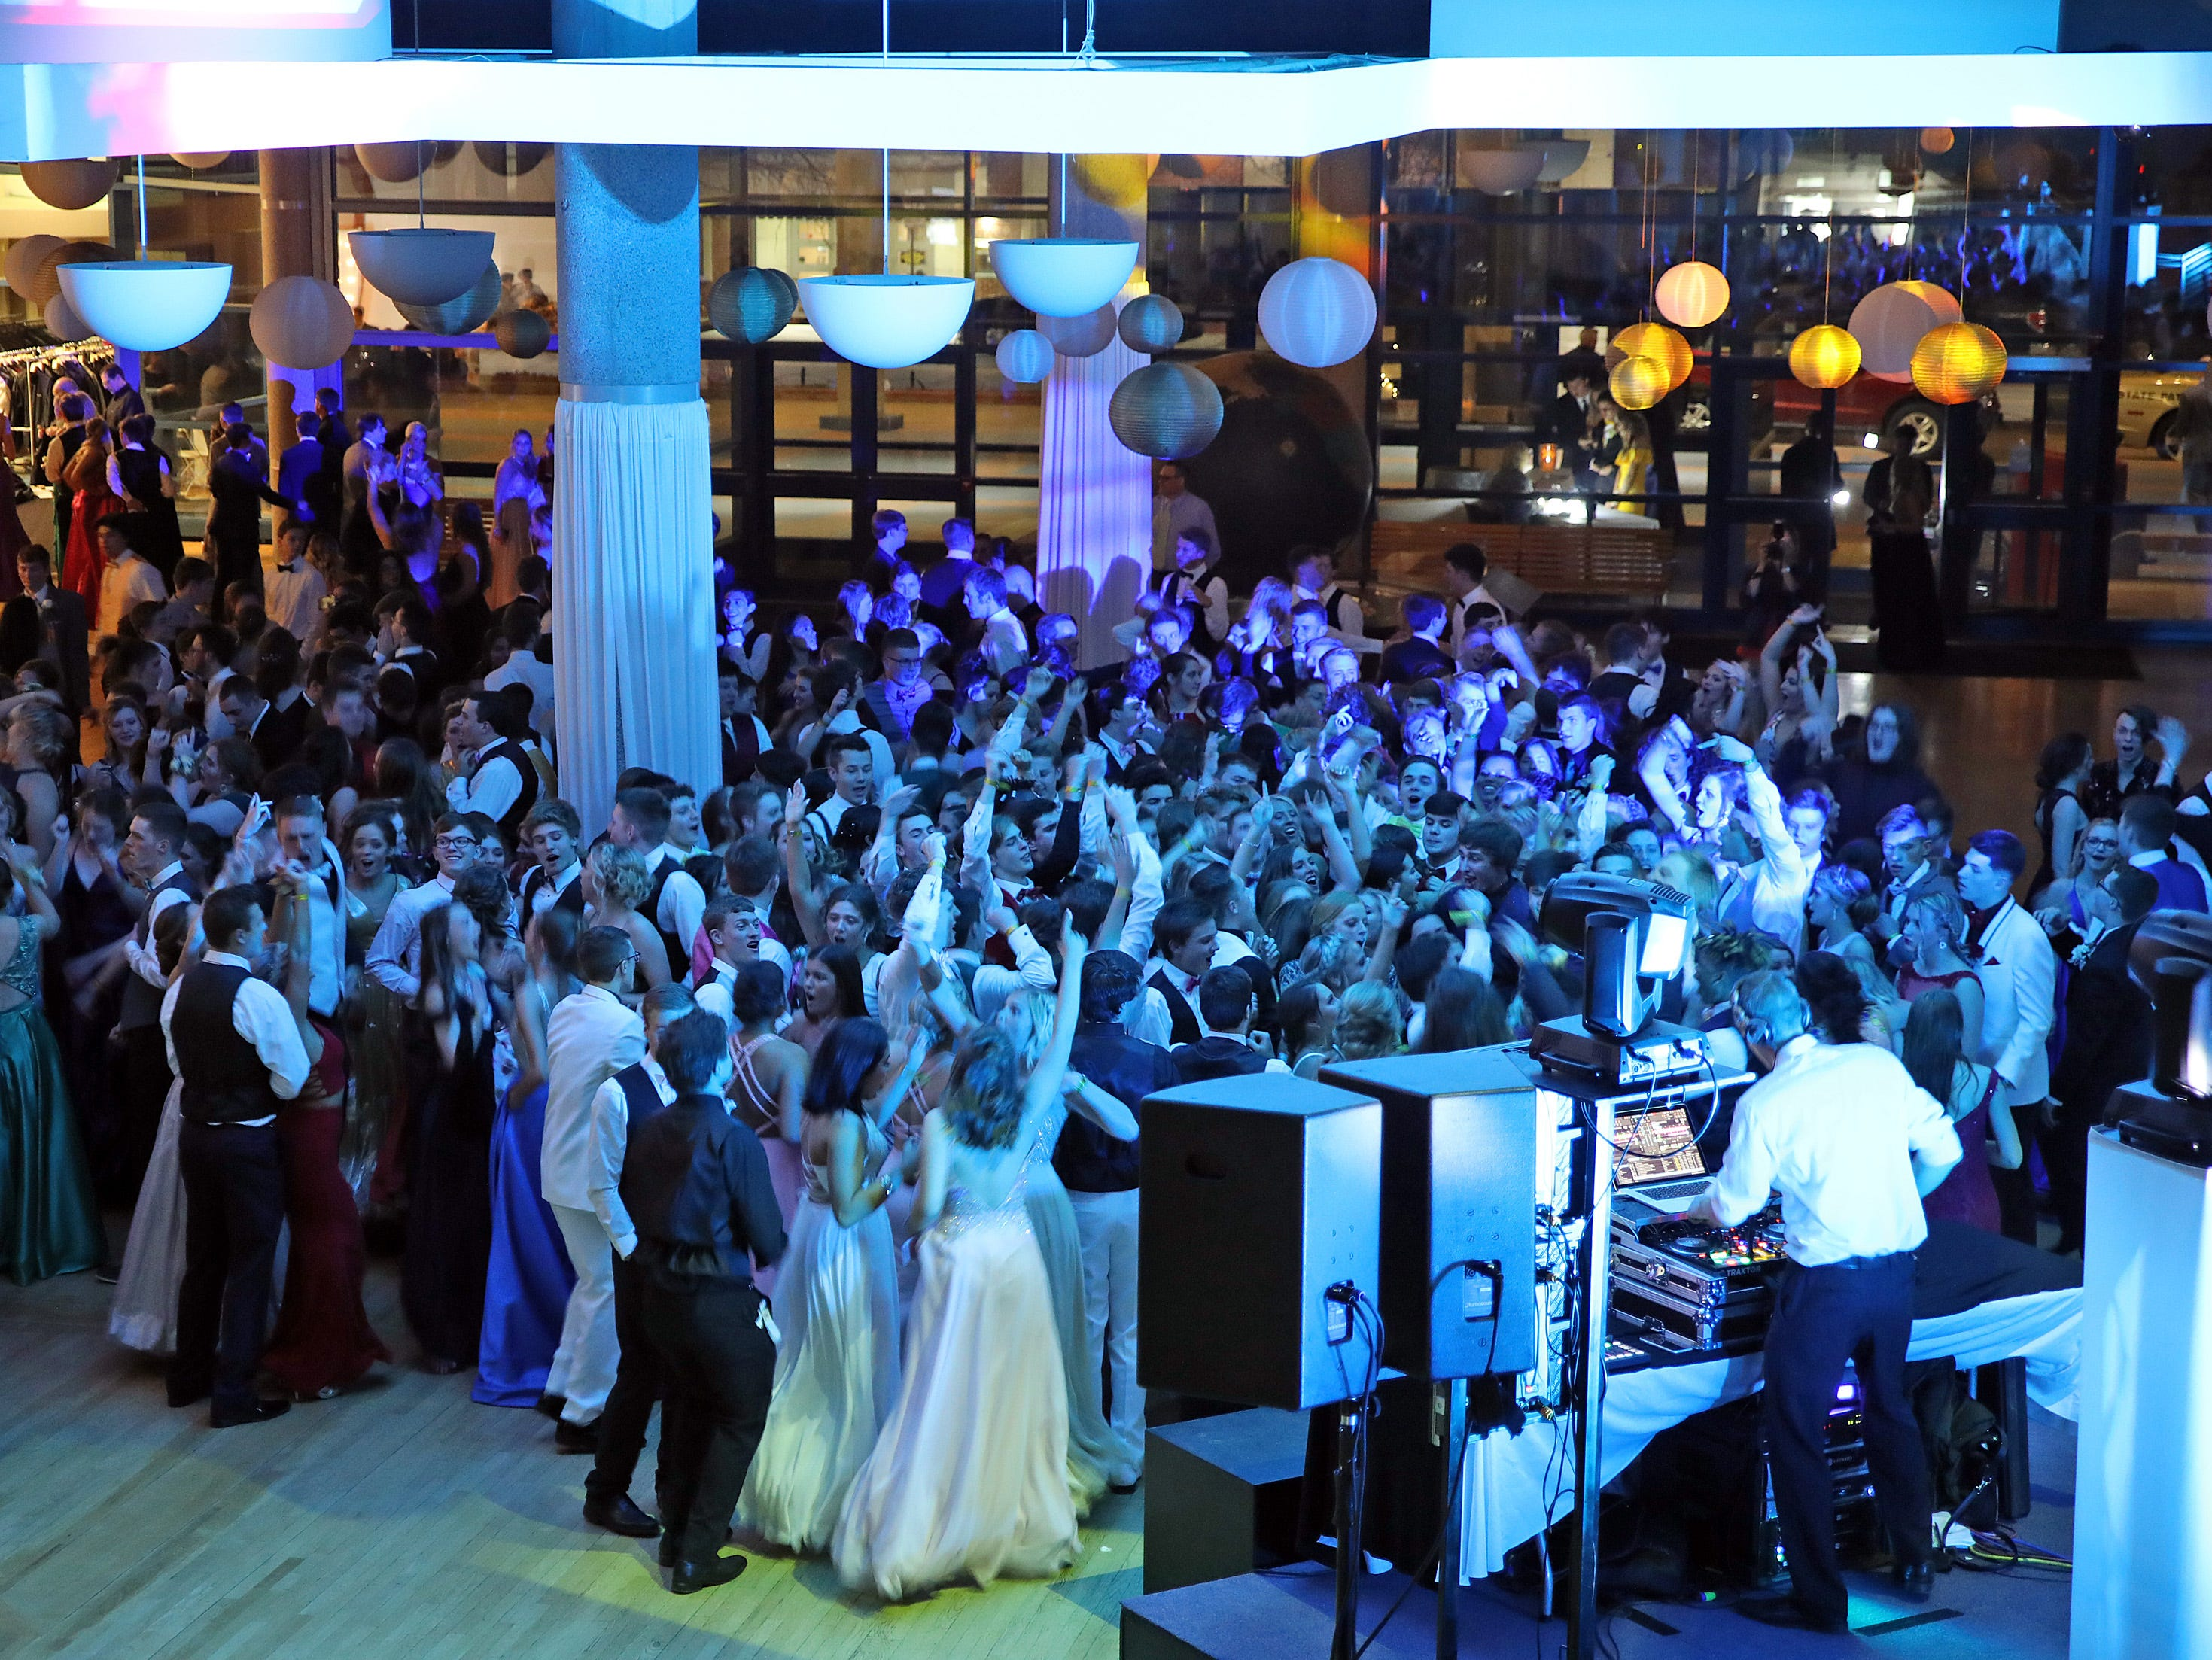 Centennial students hit the dance floor during the Ankeny Centennial High School prom at the State Historical Building in Des Moines on Saturday, April 13, 2019.